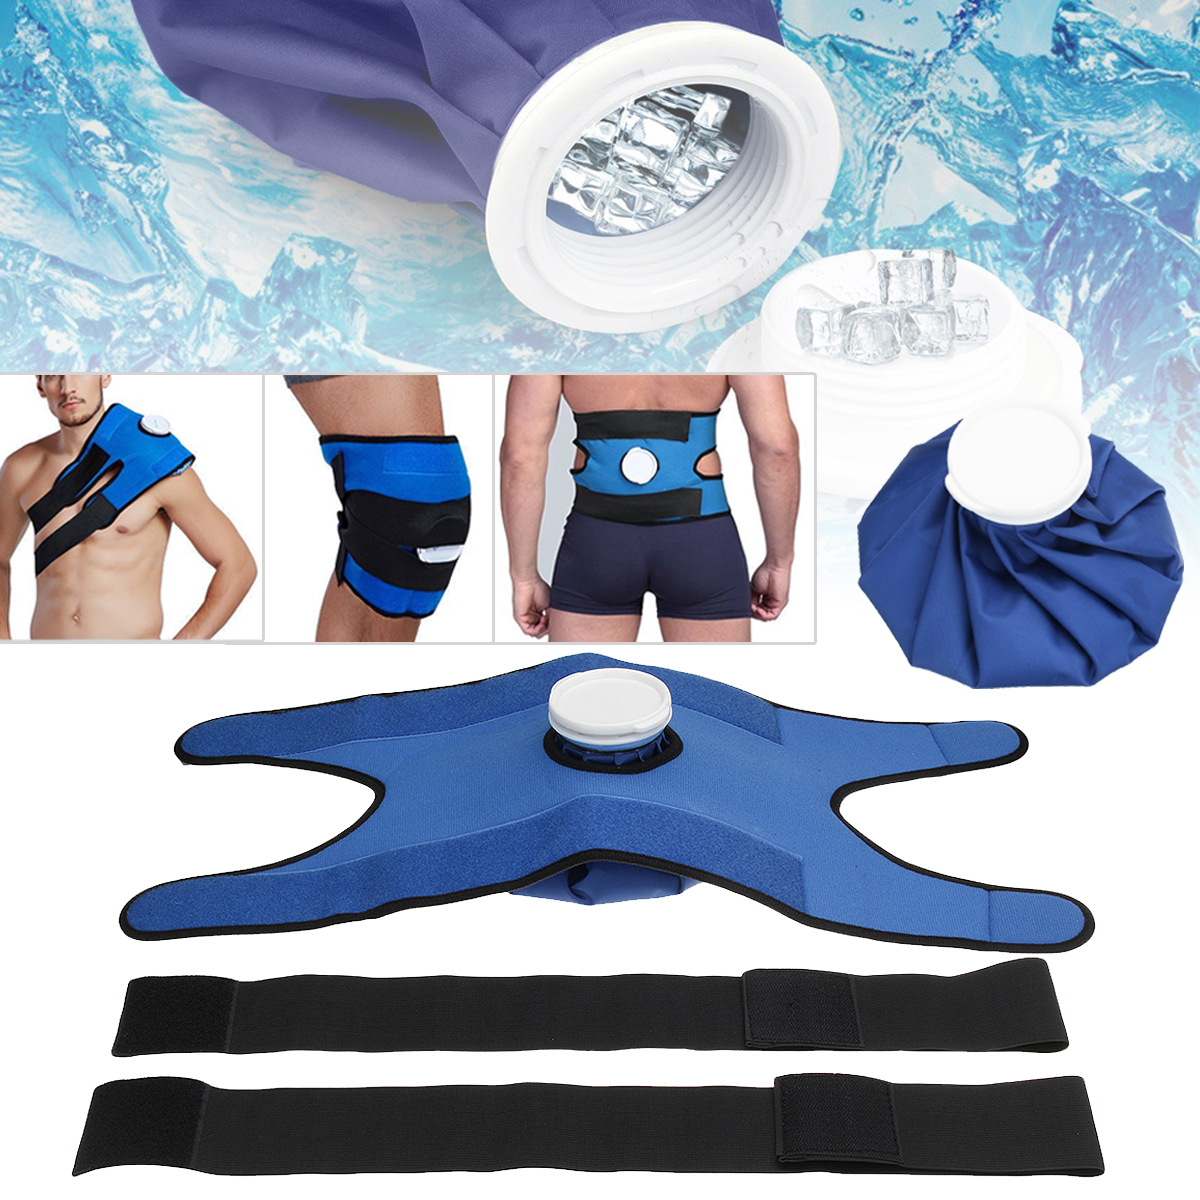 New Pain Relief Hot Cold Therapy Reusable Ice Bag Pack Wrap for knee Shoulder Back Muscle Waist Relaxing Health Care Blue Brace